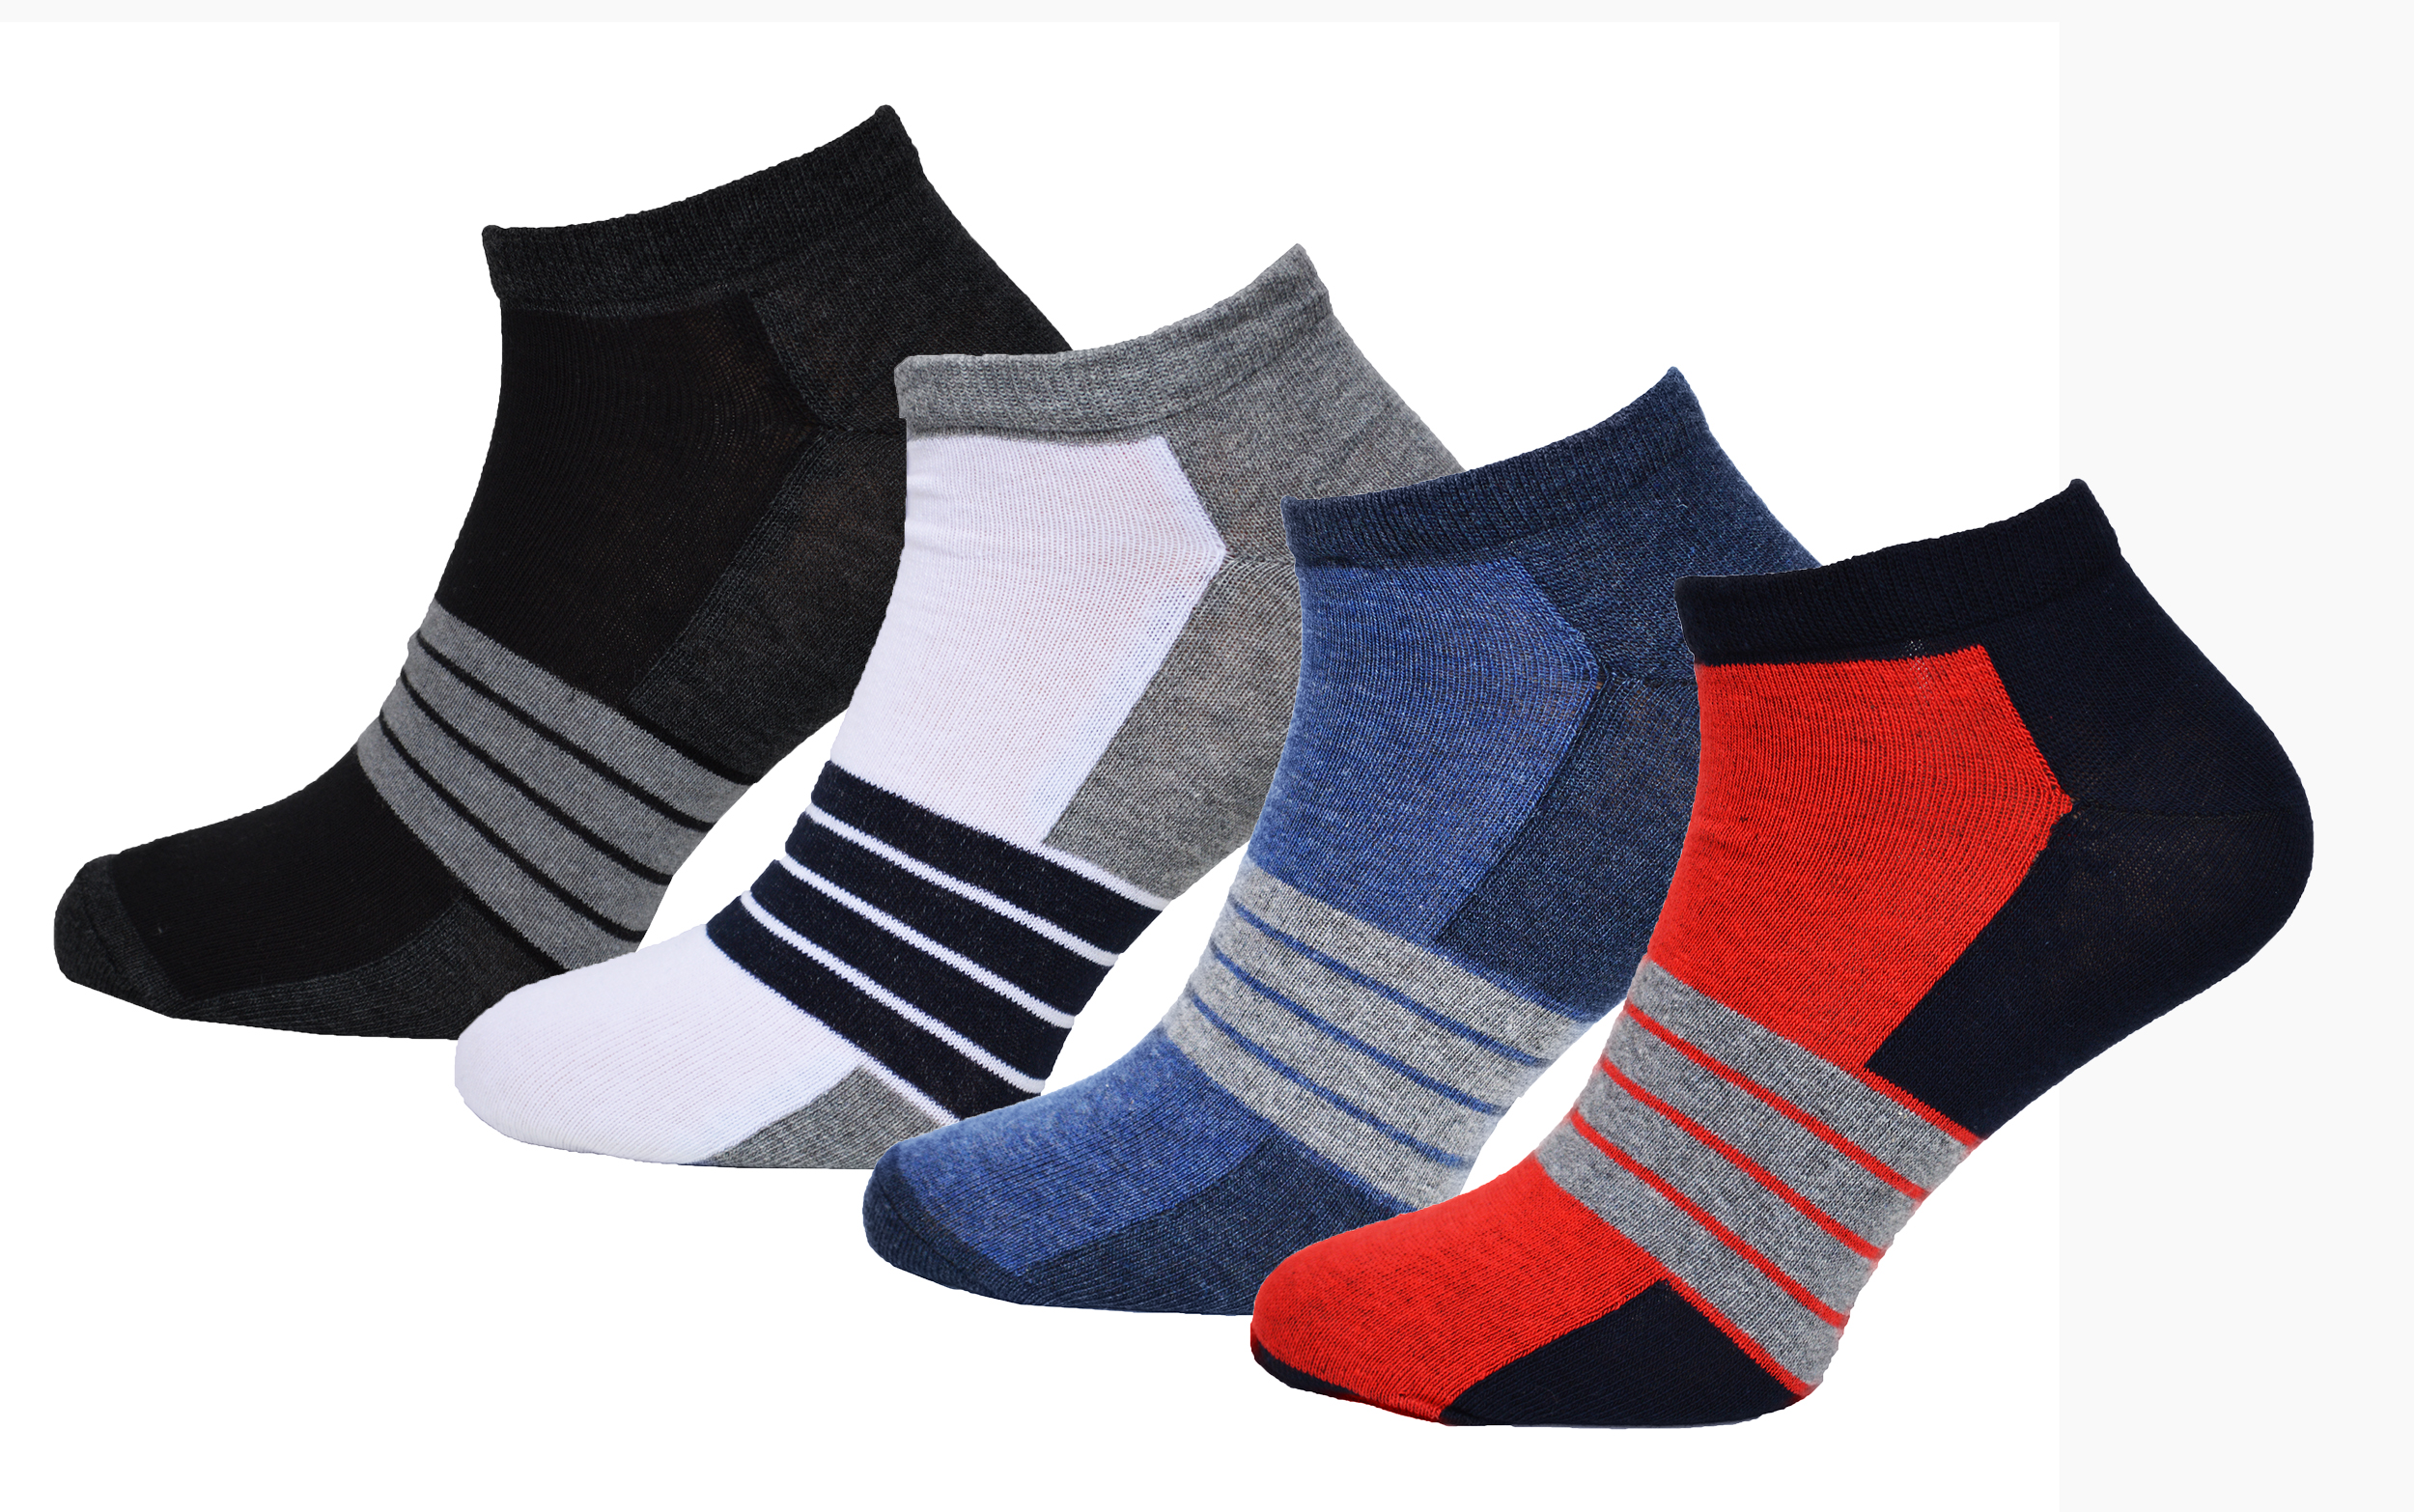 8 paar herren sneaker socken streifen design mit komfortbund sommersocken sneake ebay. Black Bedroom Furniture Sets. Home Design Ideas